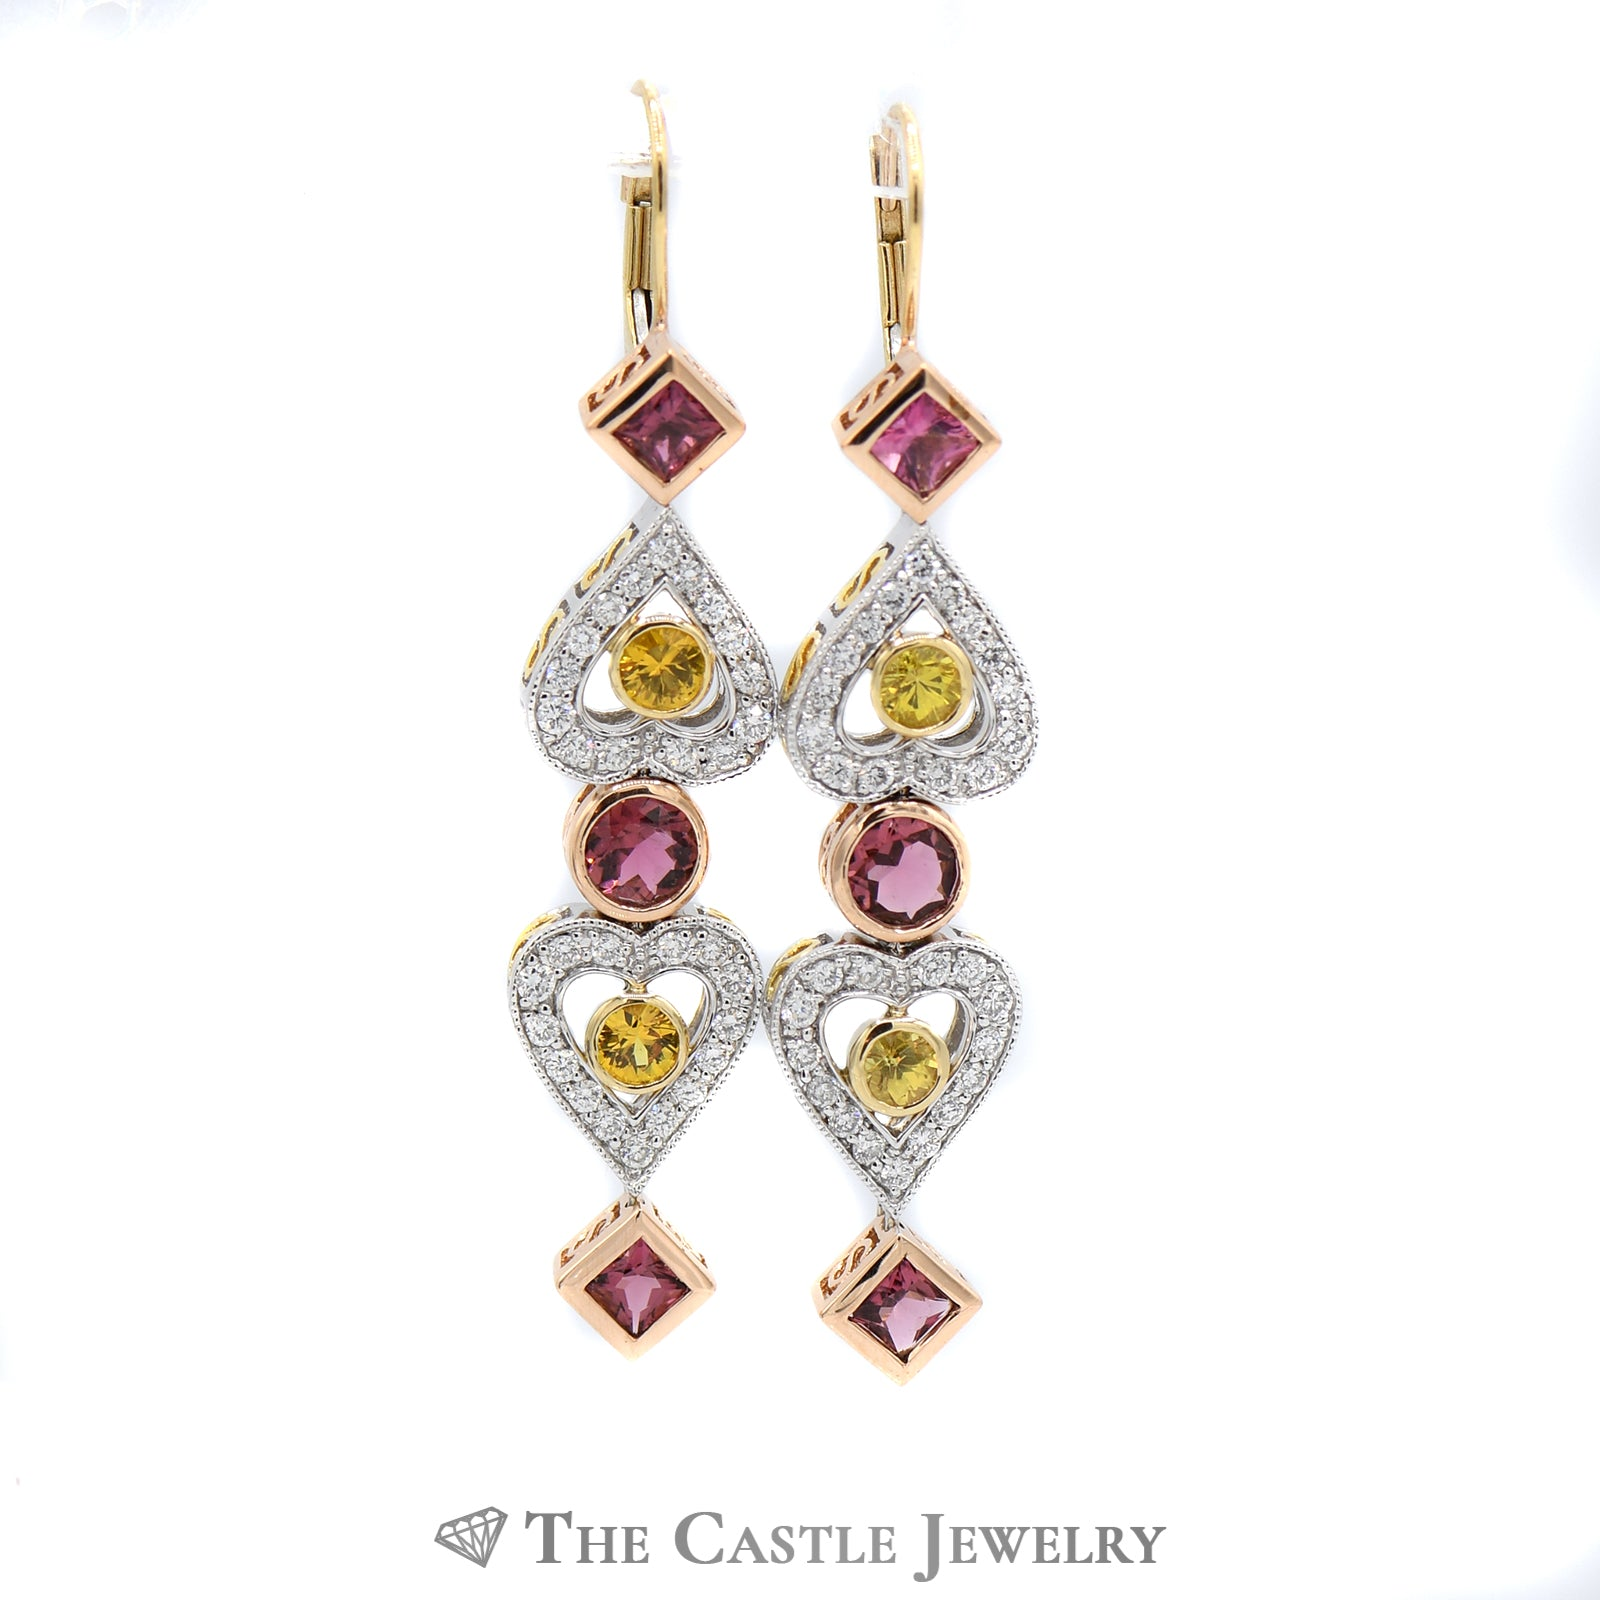 Demeter Dangling Diamond, Pink Tourmaline, & Yellow Sapphire Earrings-0